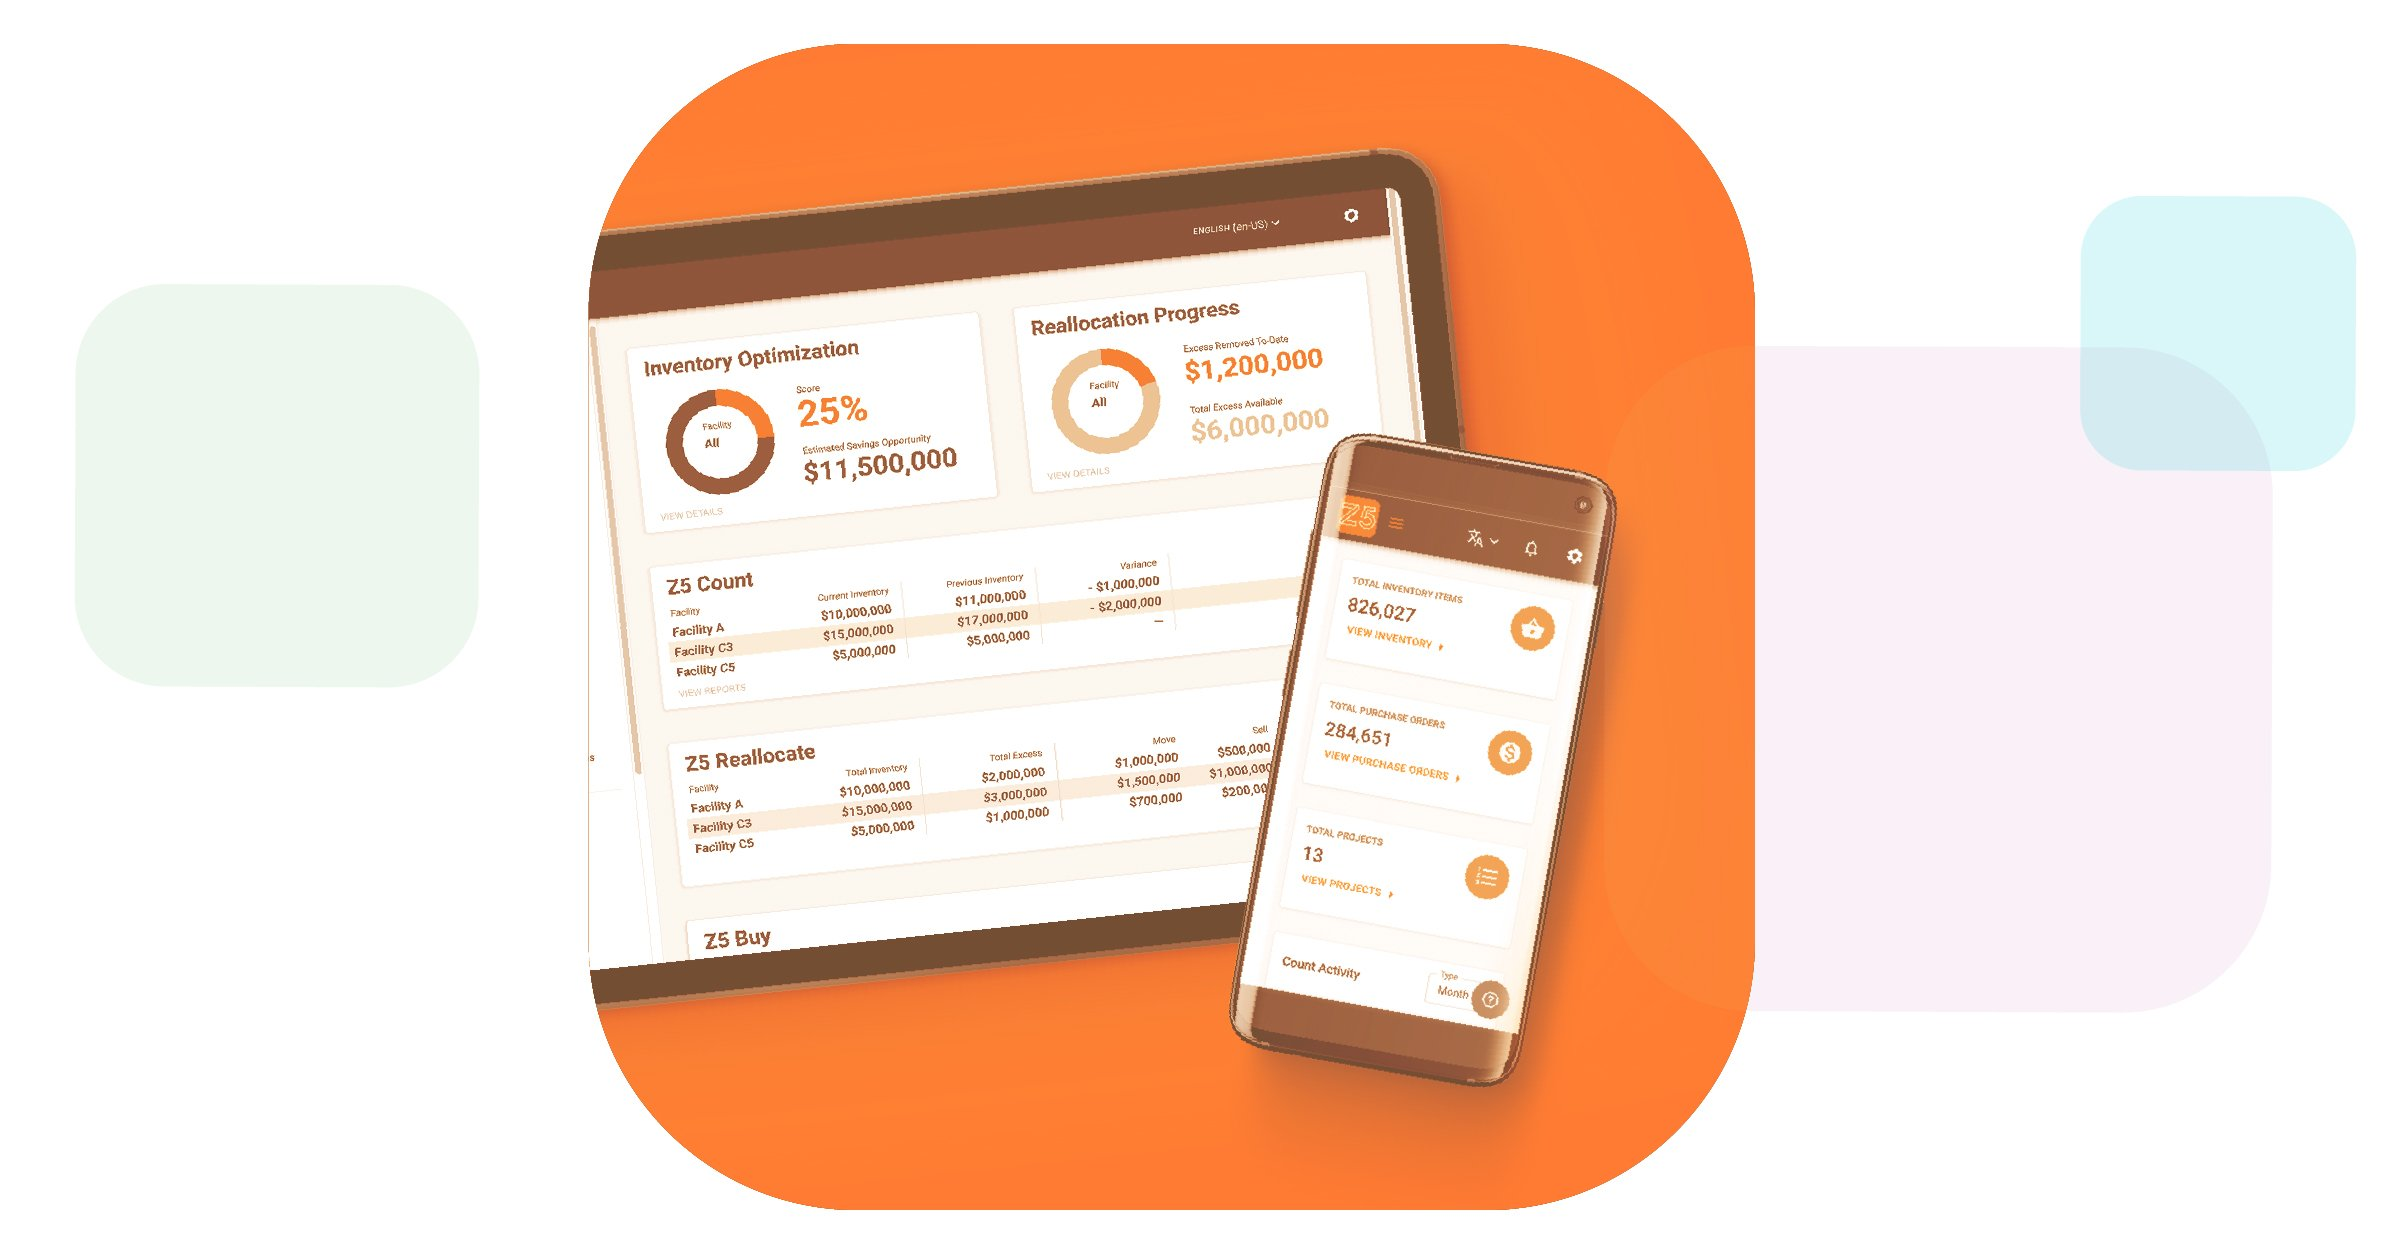 a preview of the new Z5 Inventory Platform in the form of a mobile app and web dashboard that allows healthcare providers to identify excess inventory quickly and easily